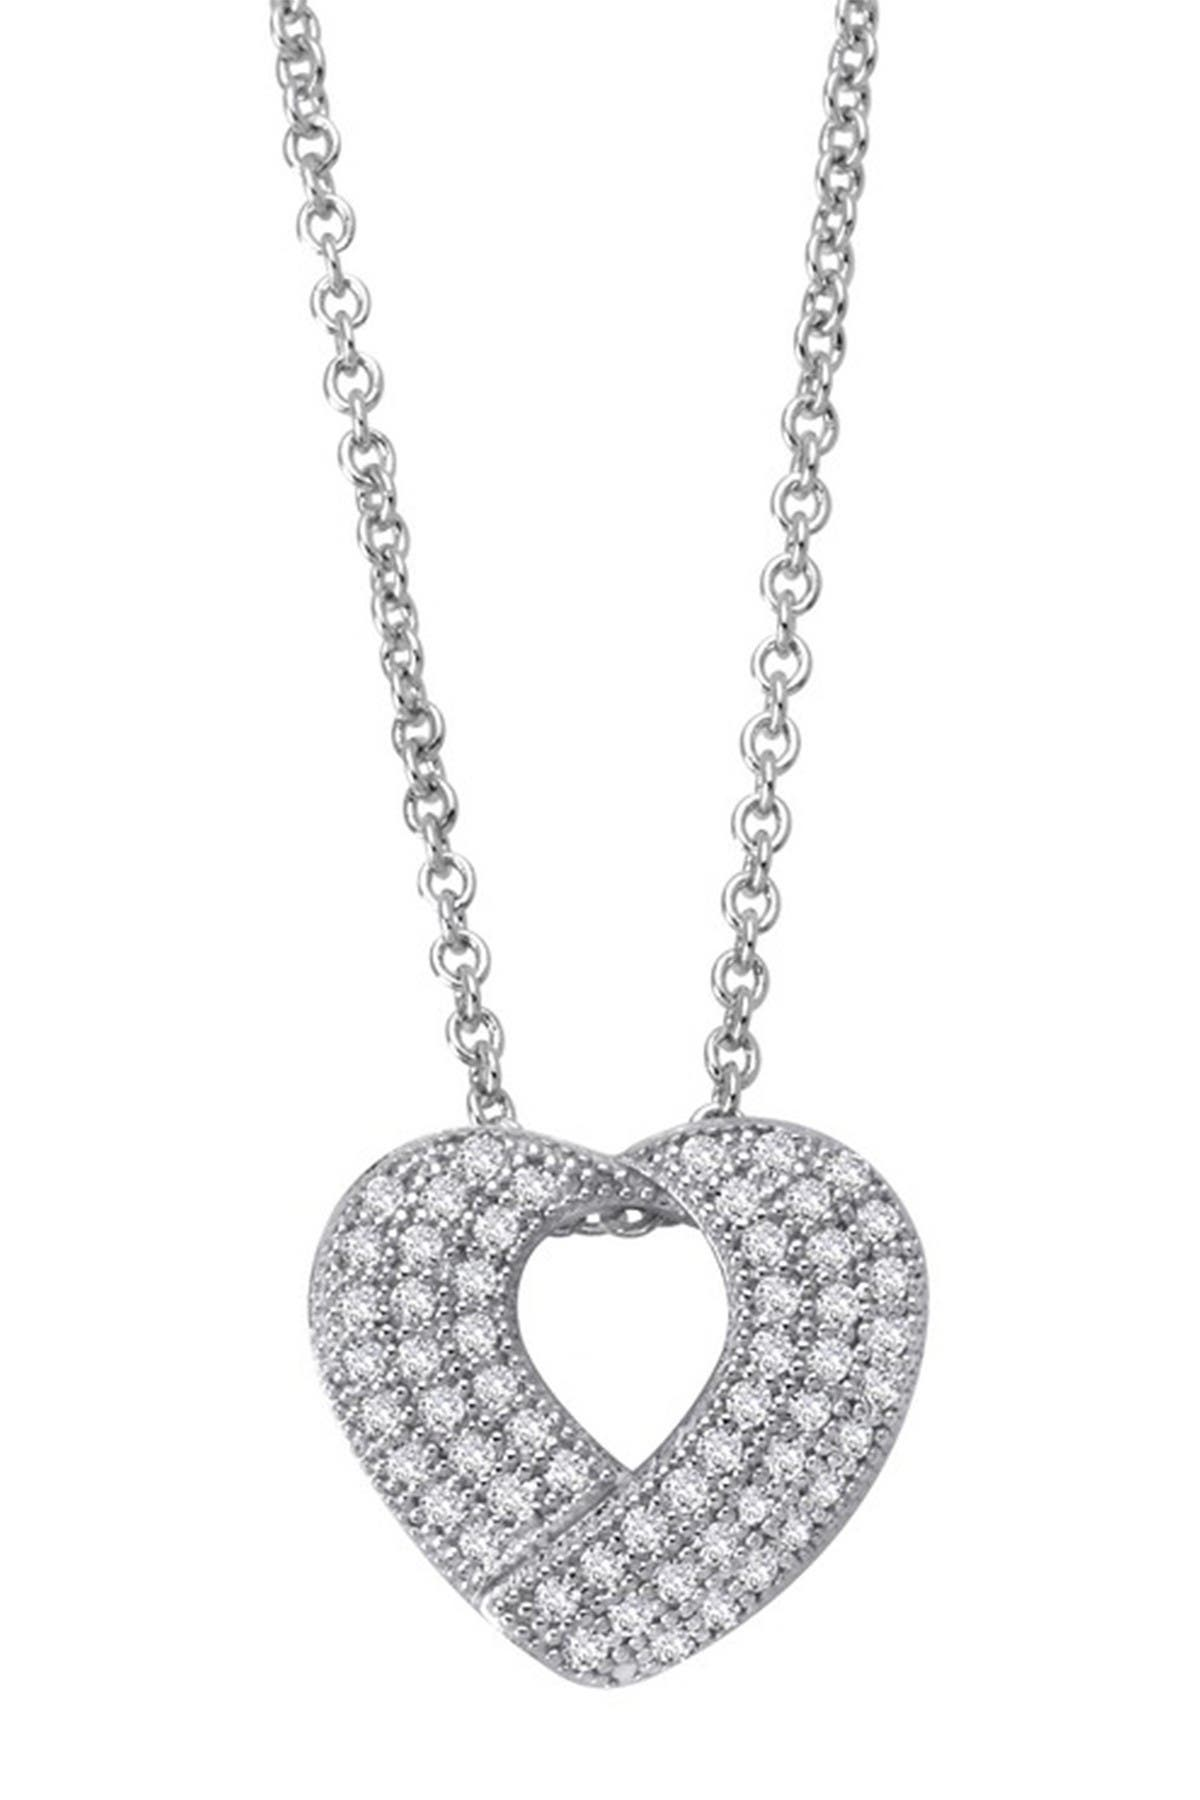 Image of LaFonn Platinum Over Sterling Silver Simulated Diamond Micro Pave Open Heart Pendant Necklace